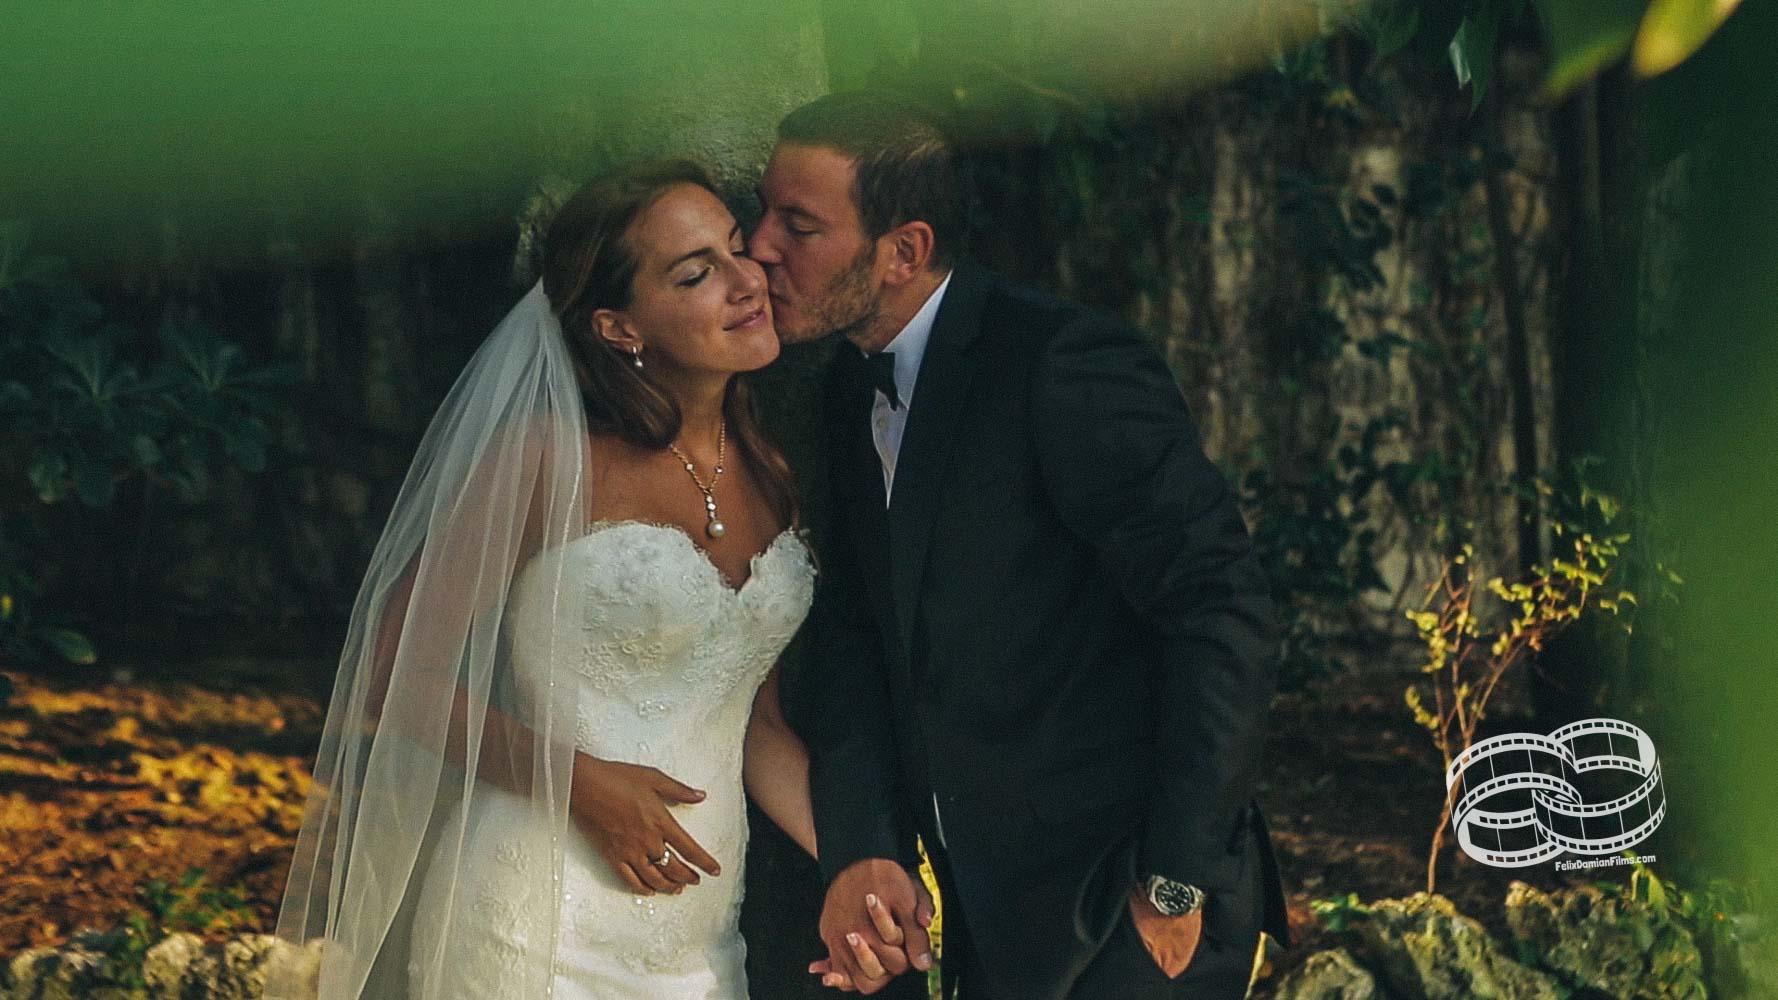 Ilke & Selim – «Love in Madrid», great moments from an inspiring wedding